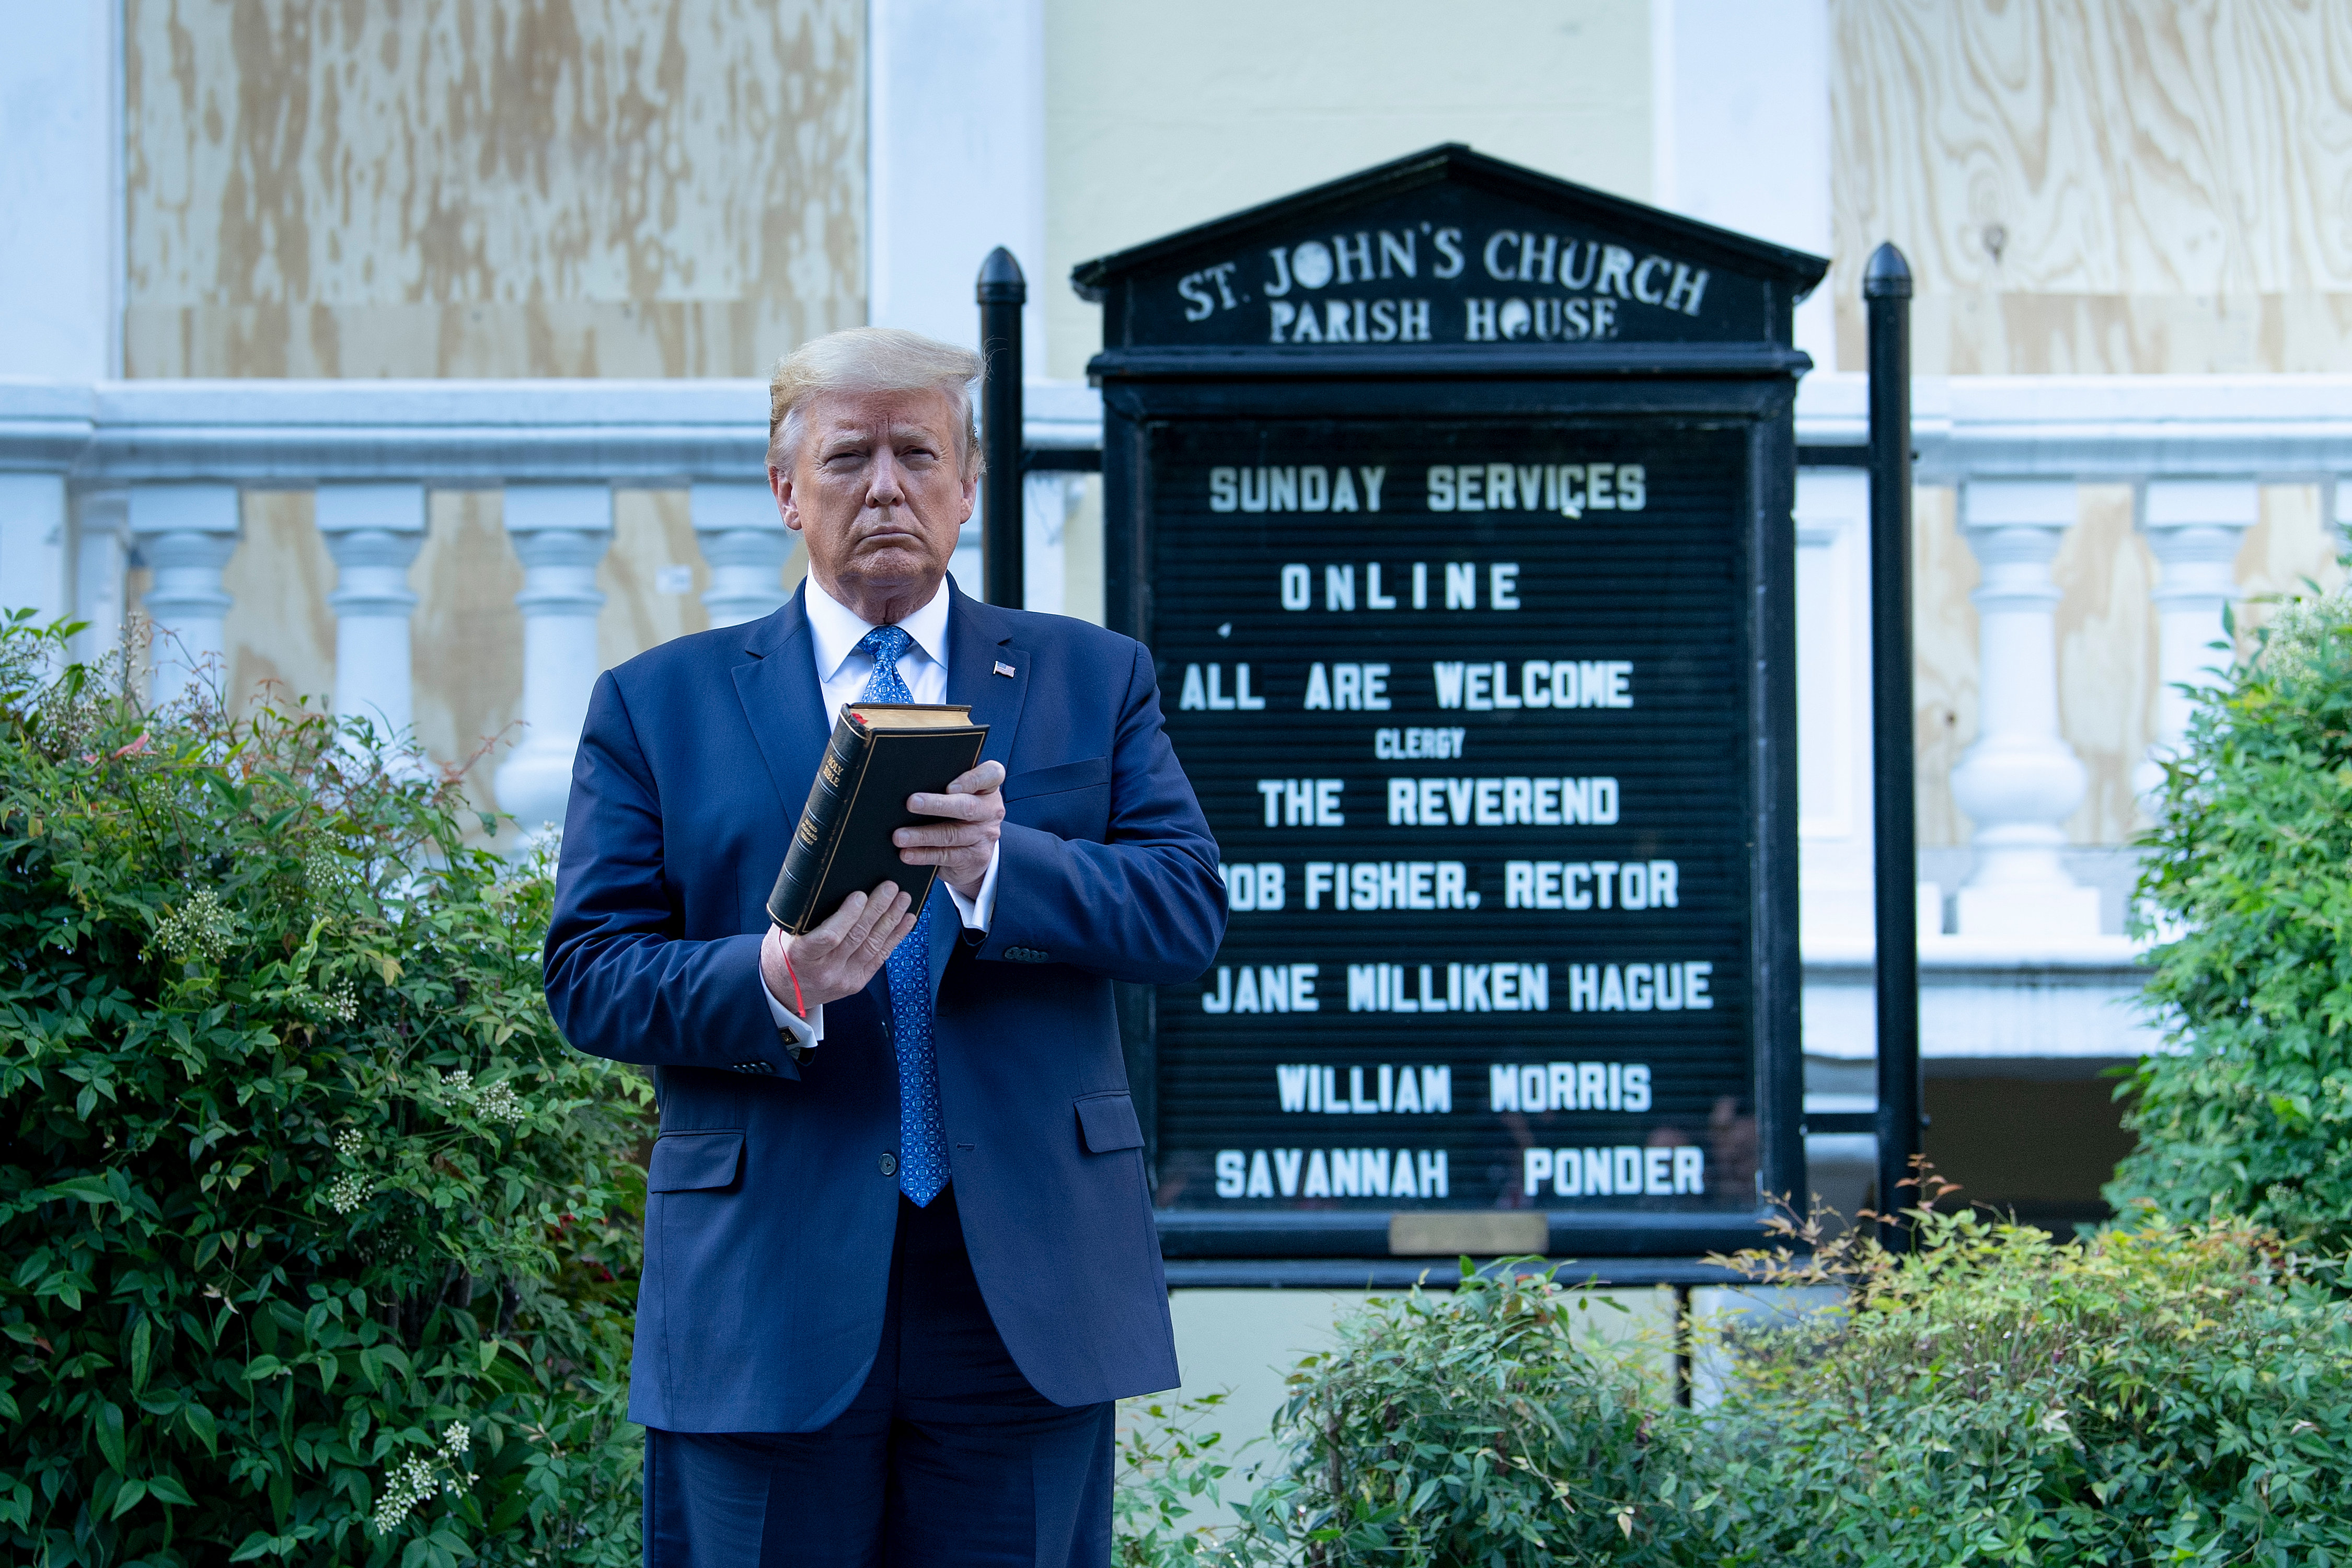 US President Donald Trump holds a Bible while visiting St. John's Church across from the White House after the area was cleared of people protesting the death of George Floyd June 1, 2020, in Washington, DC. - US President Donald Trump was due to make a televised address to the nation on Monday after days of anti-racism protests against police brutality that have erupted into violence.